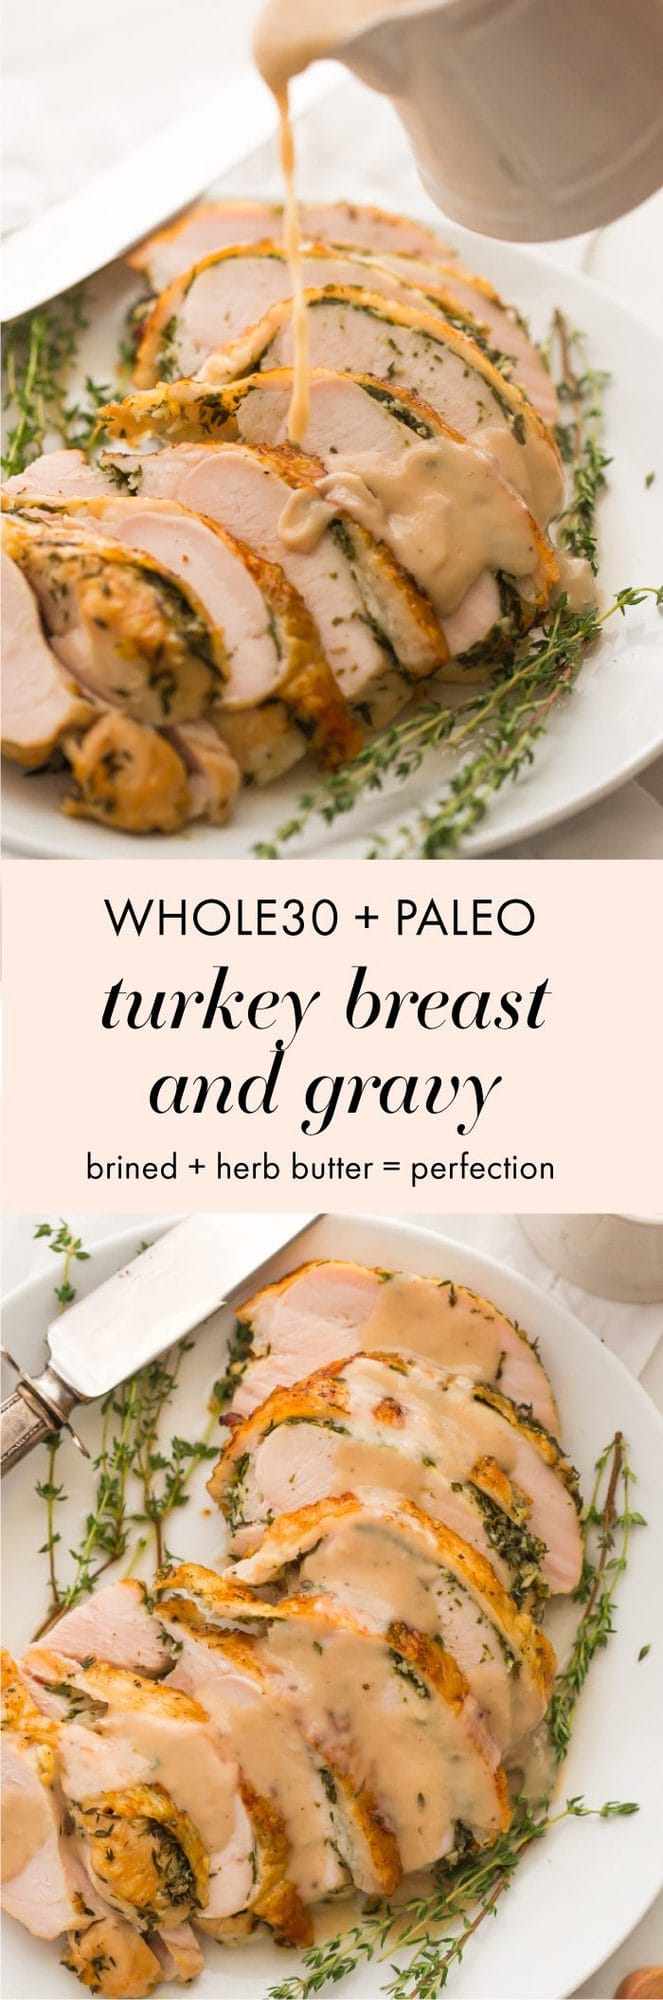 This Whole30 turkey breast and gravy is epic: brined to perfection with an herb butter stuffed under the skin (using ghee, of course)! It's my perfect Thanksgiving turkey made Whole30 Thanksgiving compliant, and it's a must for any paleo Thanksgiving or Whole30 Thanksgiving! This Whole30 turkey breast and gravy might actually become your favorite turkey recipe...